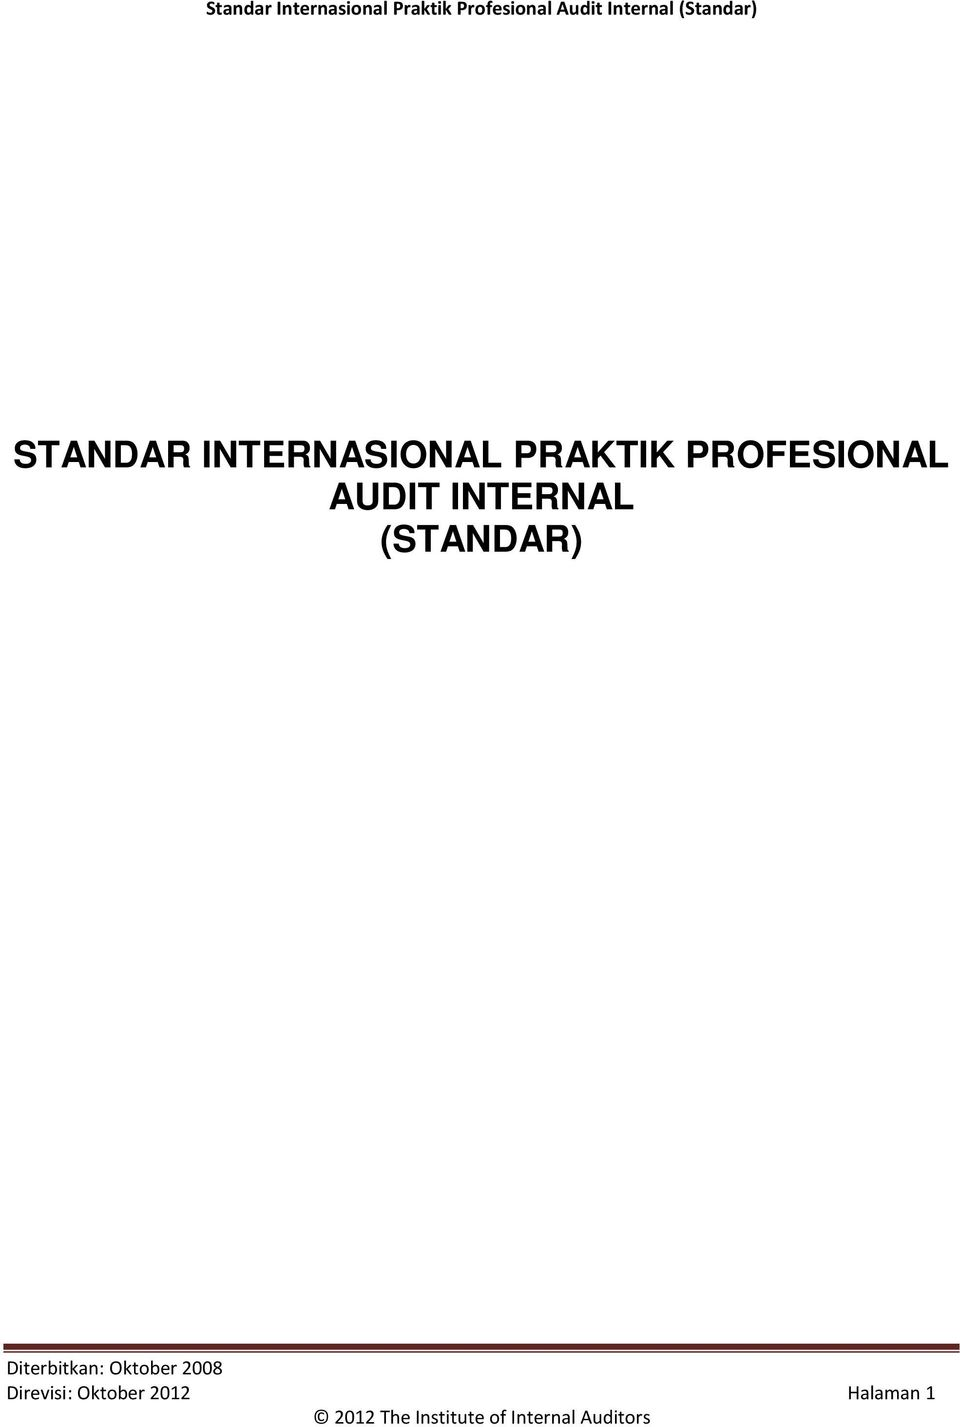 AUDIT INTERNAL (STANDAR)